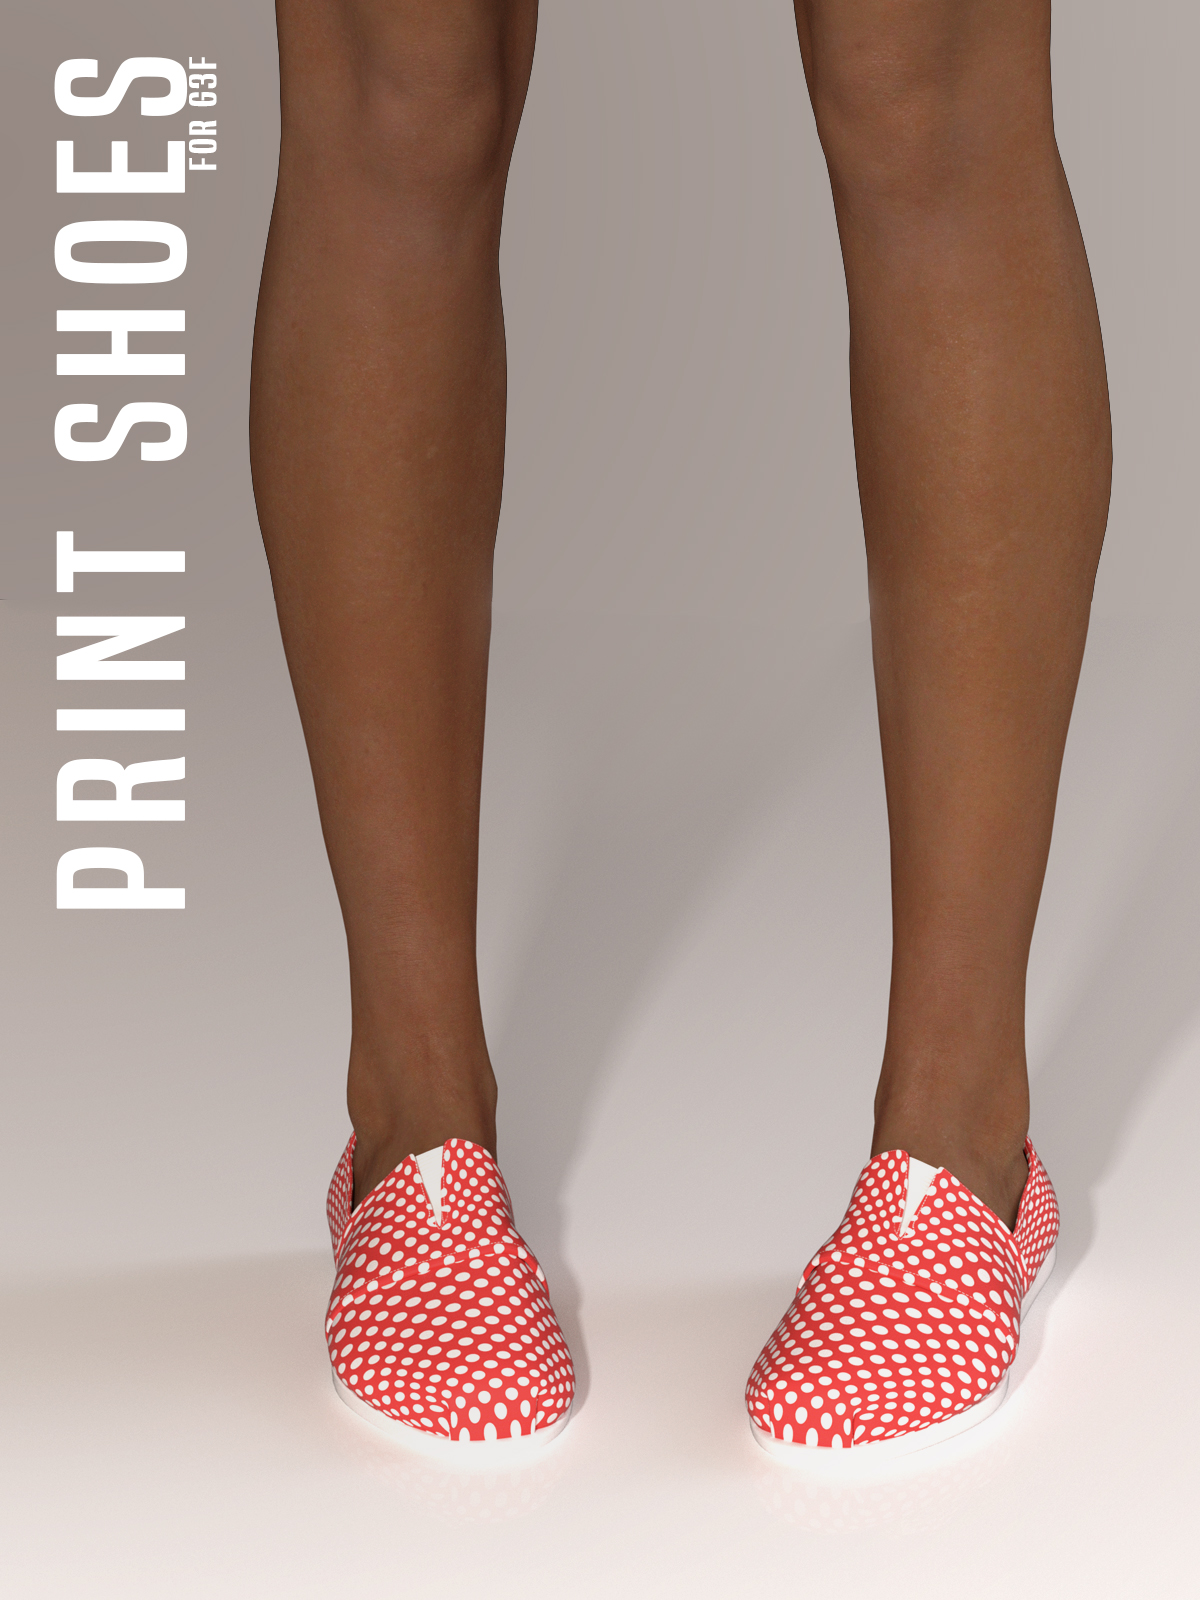 Print Shoes for G3F